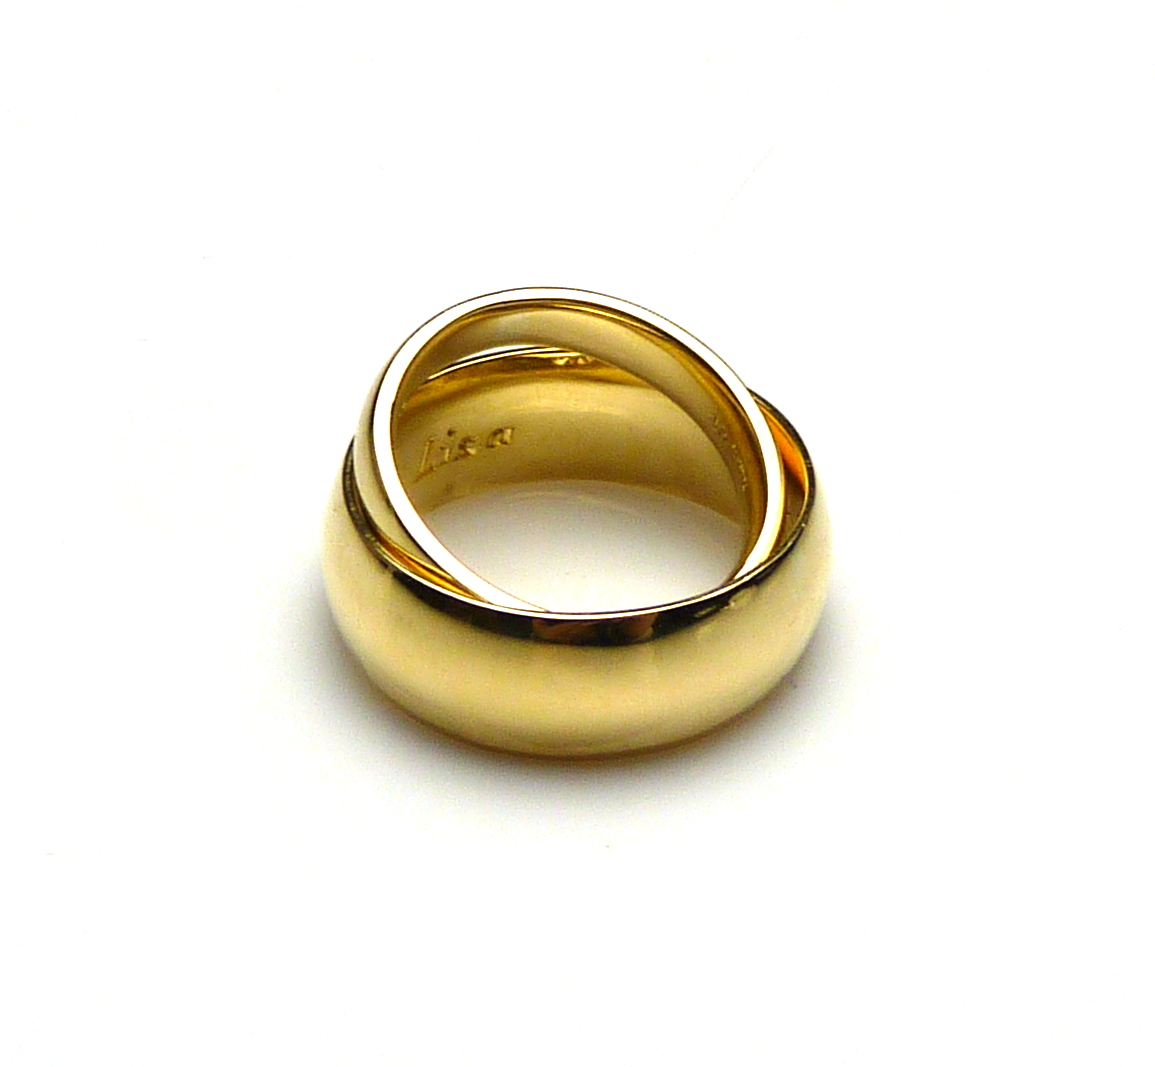 Lisa and Mick's 18ct Yellow Gold Wedding Bands